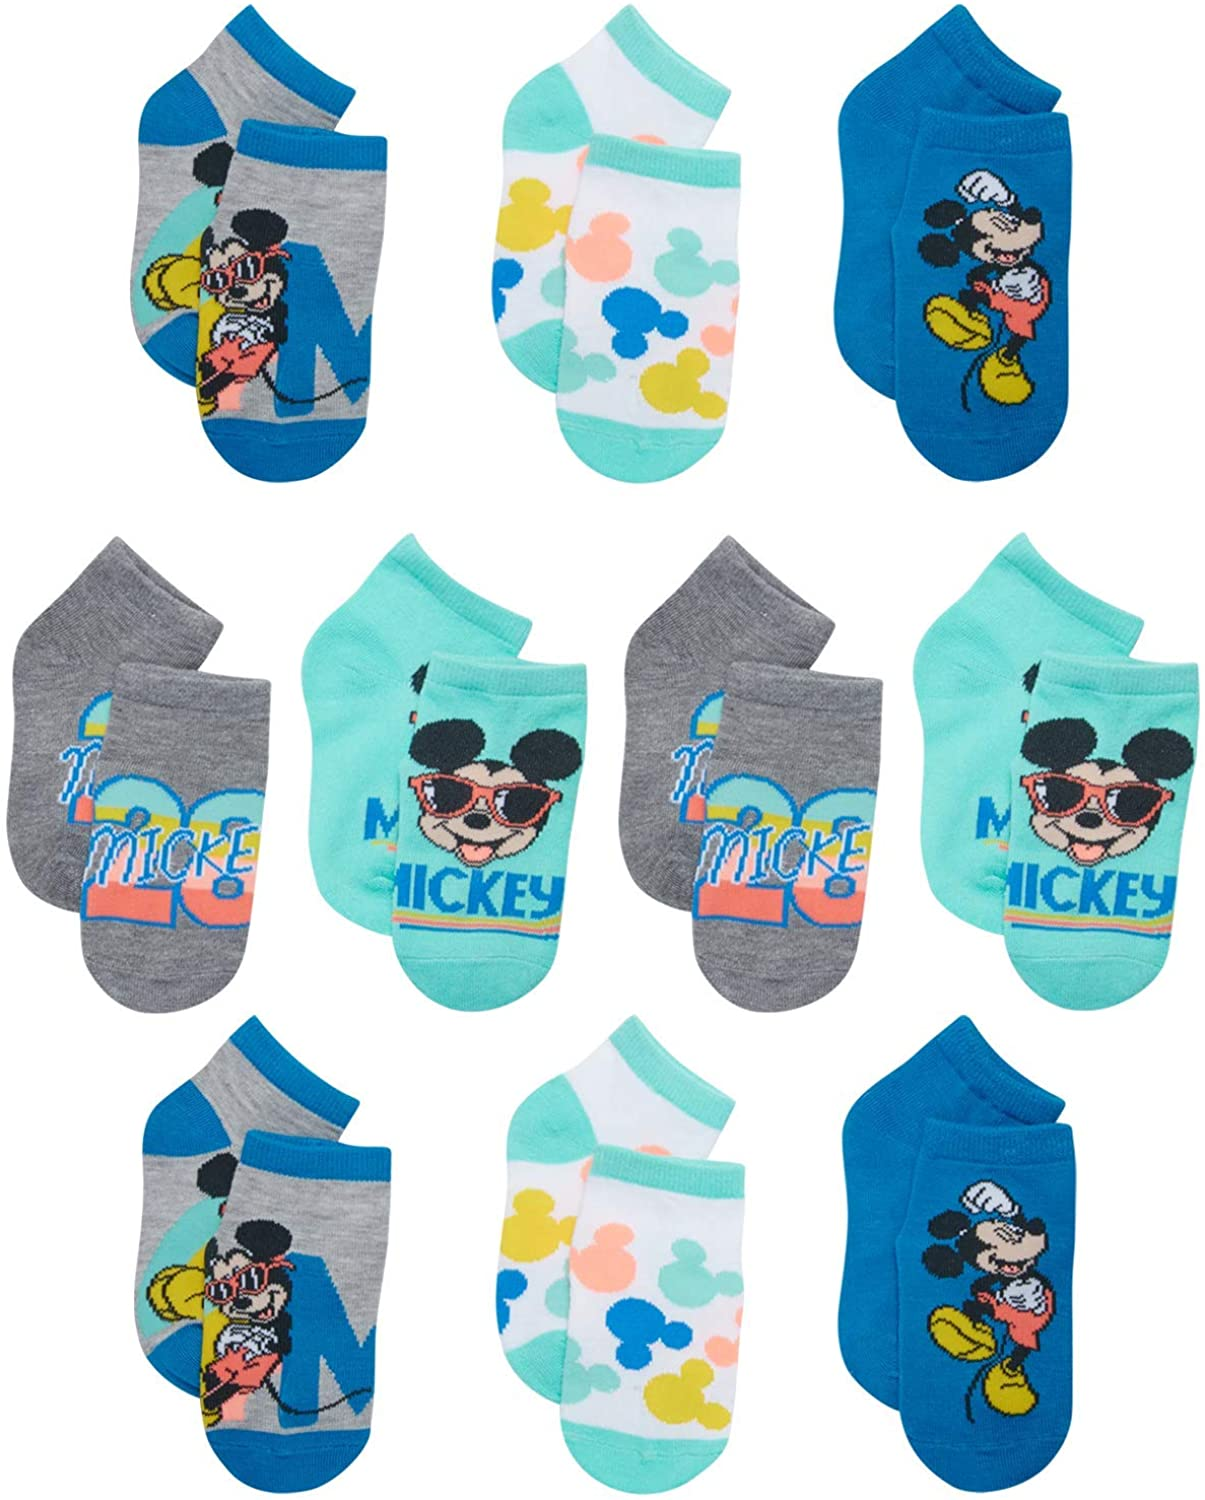 Disney Baby Boy's Mickey Mouse Socks - Low Cut No-Show Ankle Socks (10 Pack)